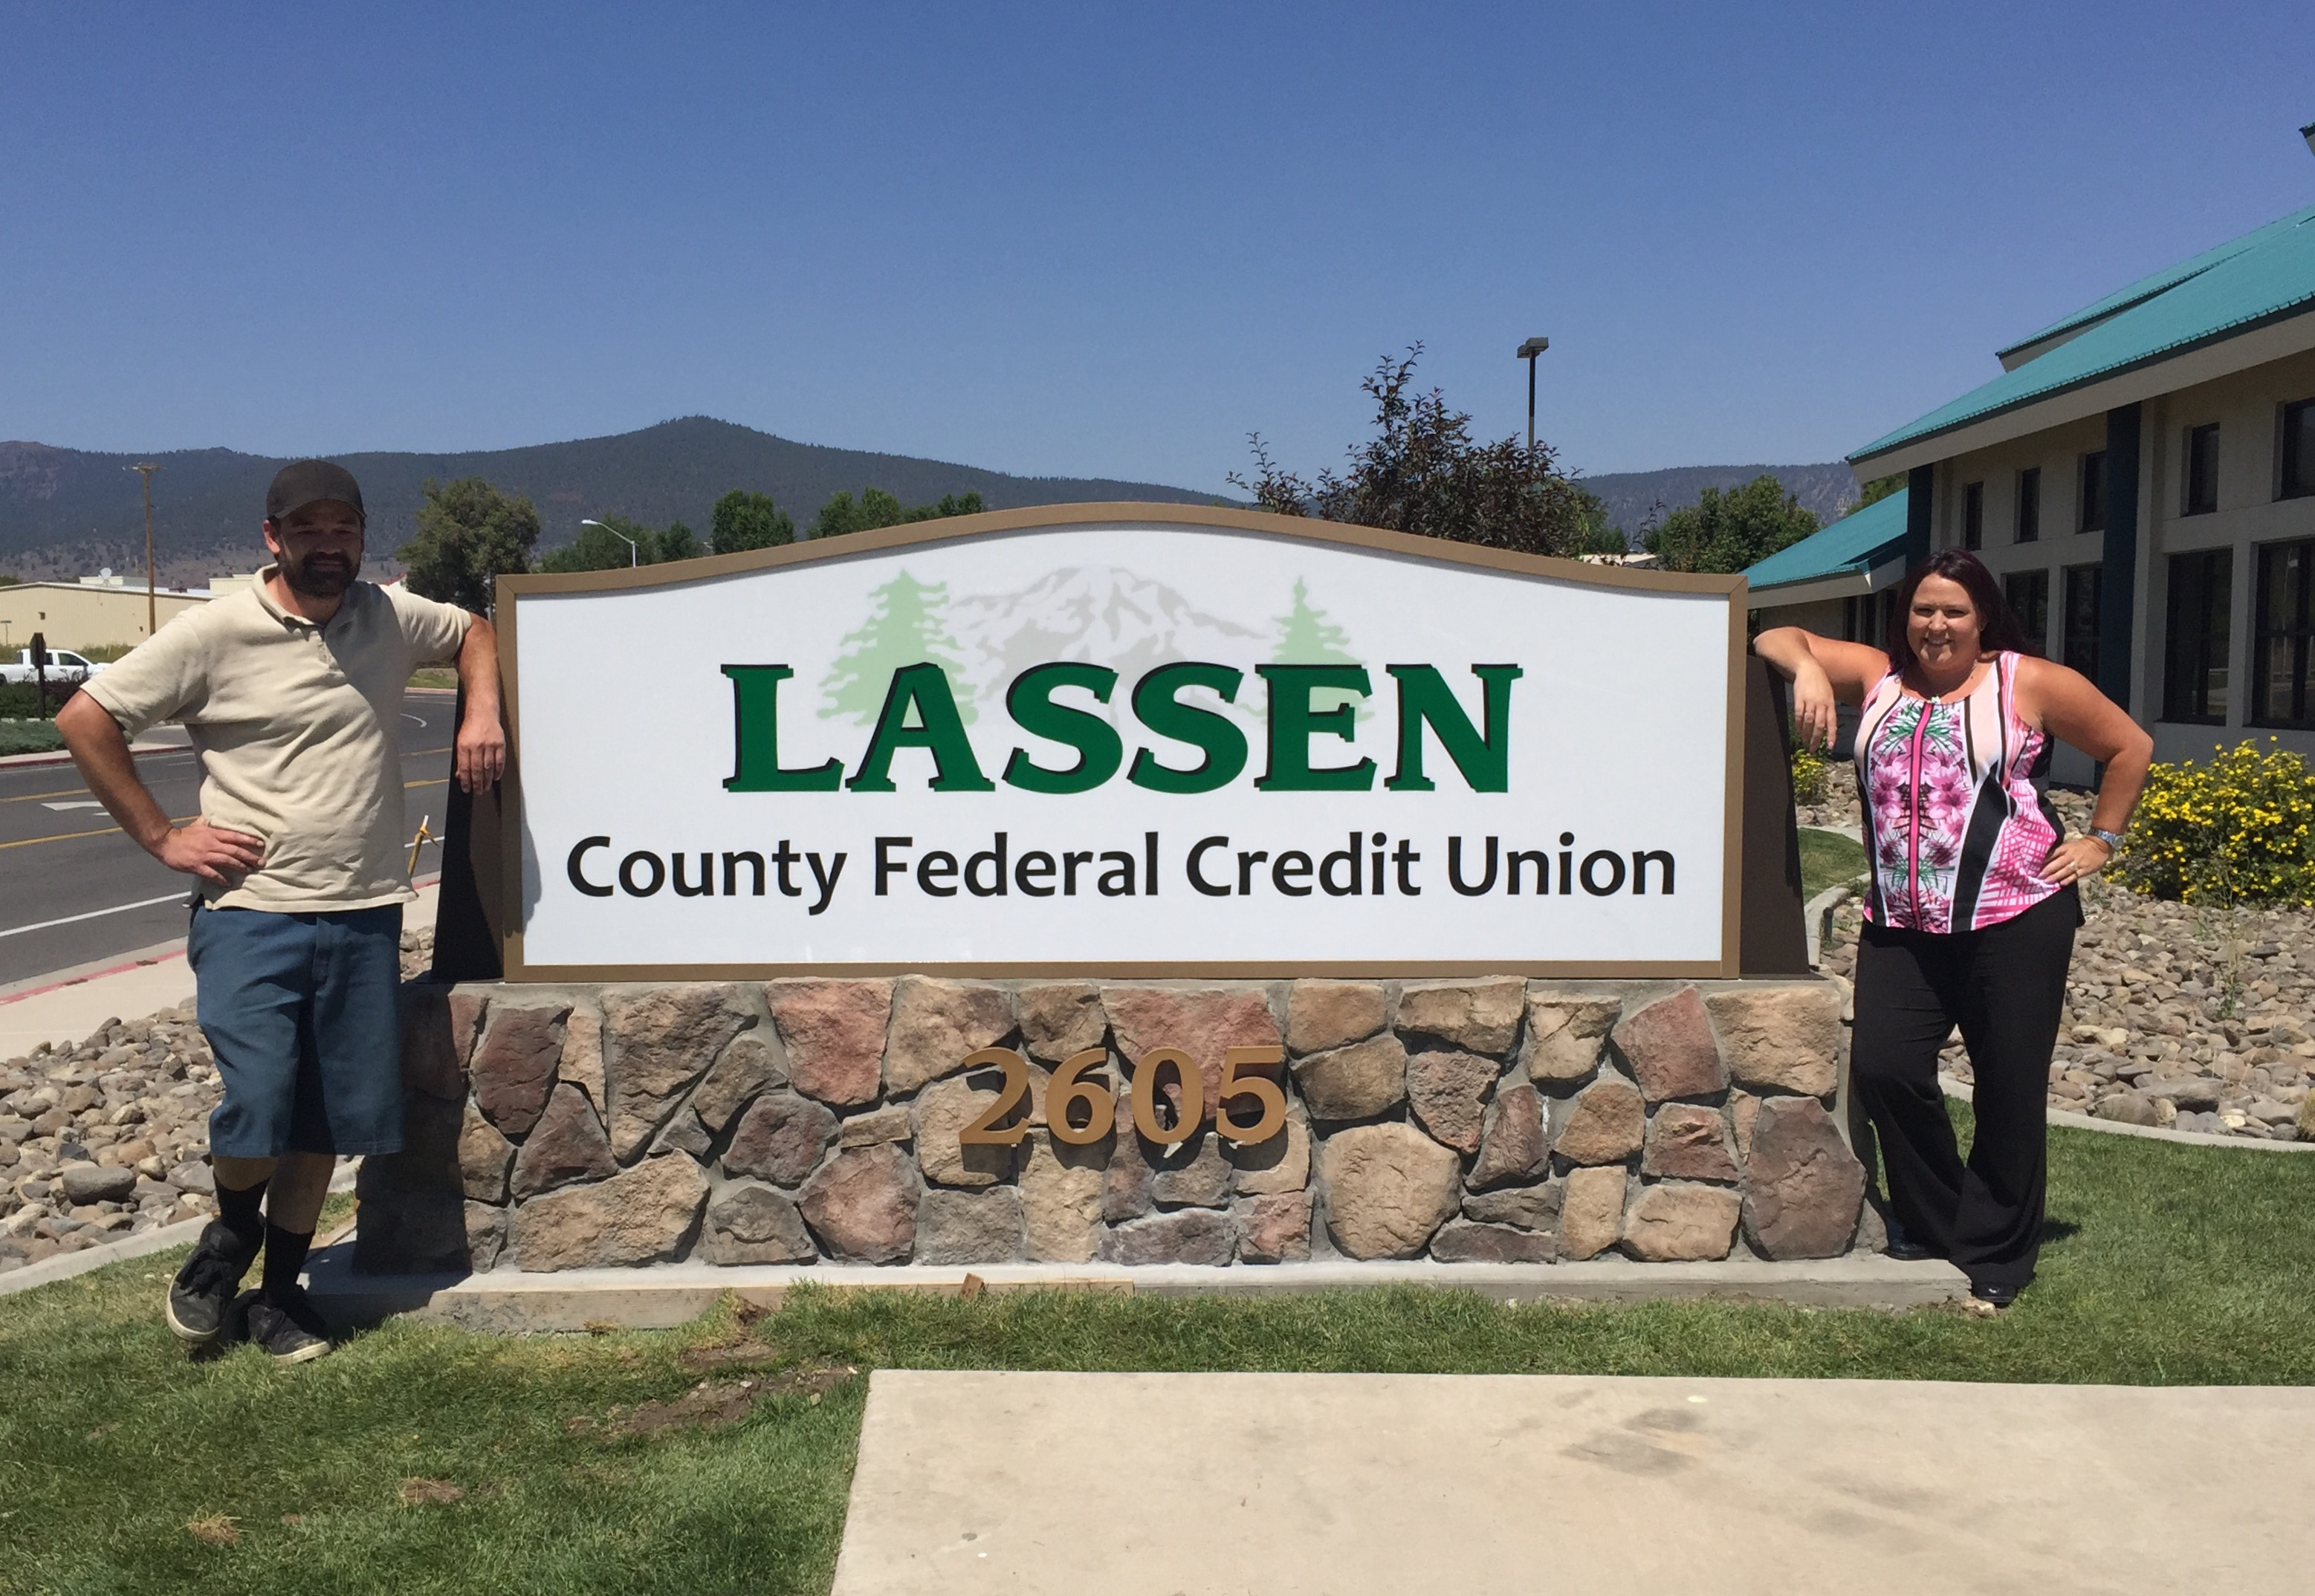 Come and visit us at Lassen County Federal Credit Union.